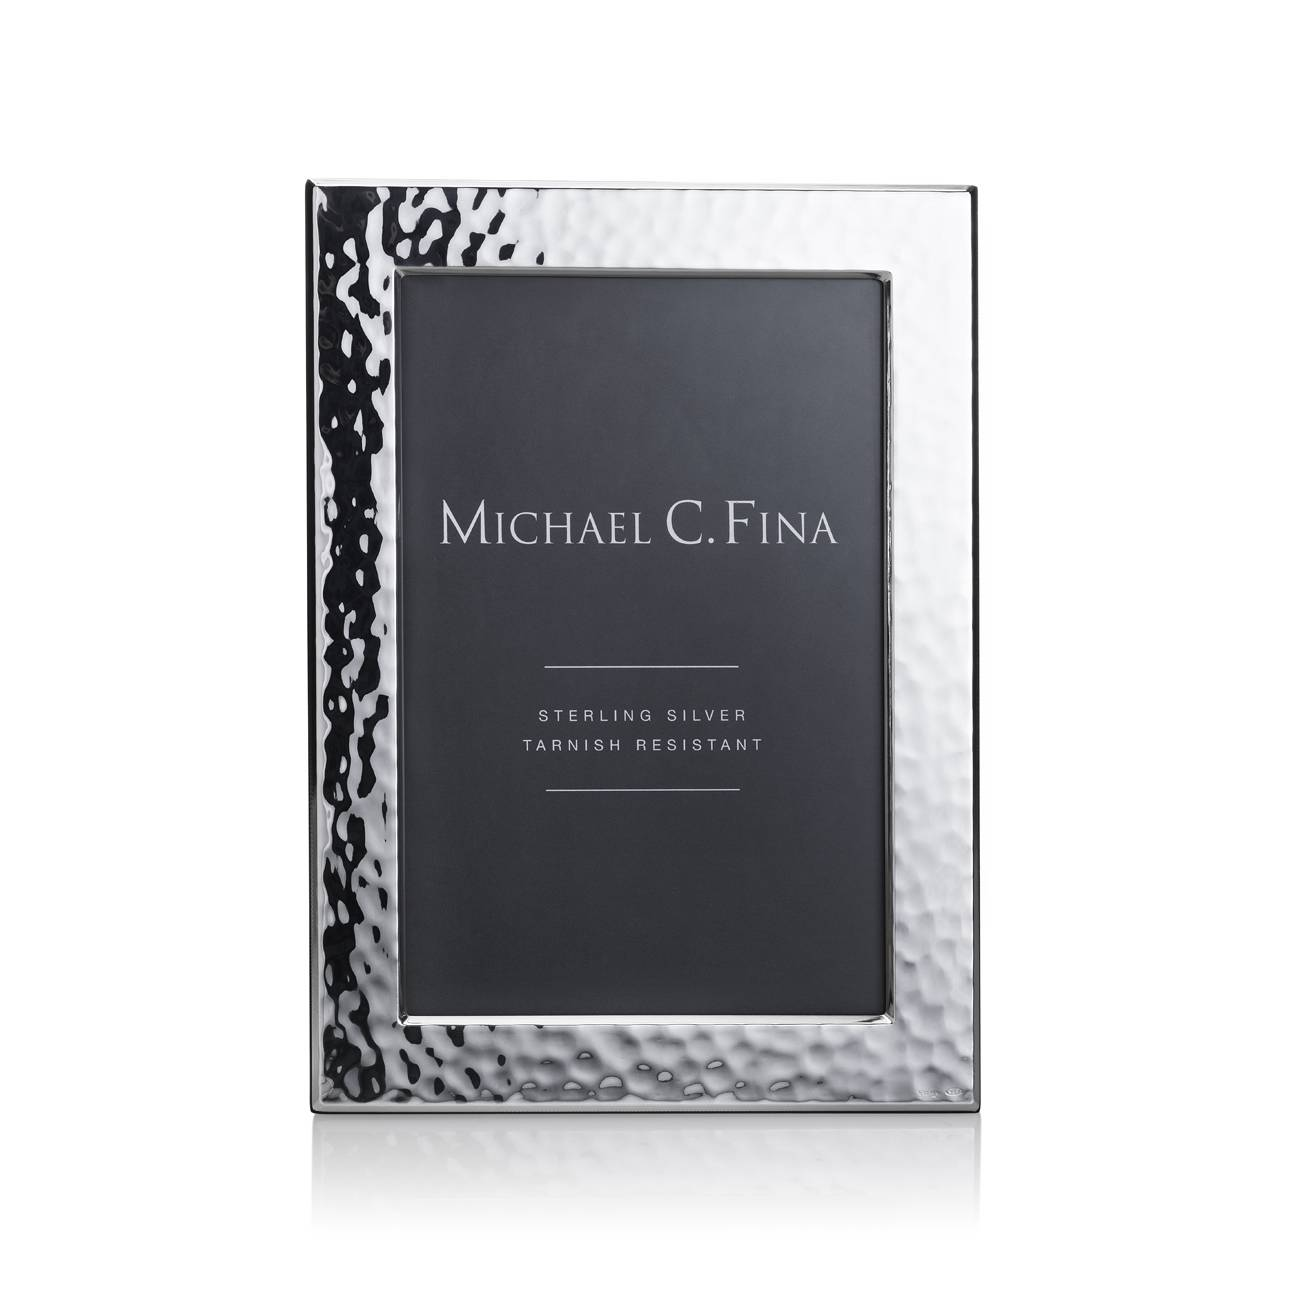 Michael C. Fina Greenwich Hammered Sterling Silver Frame 4x6